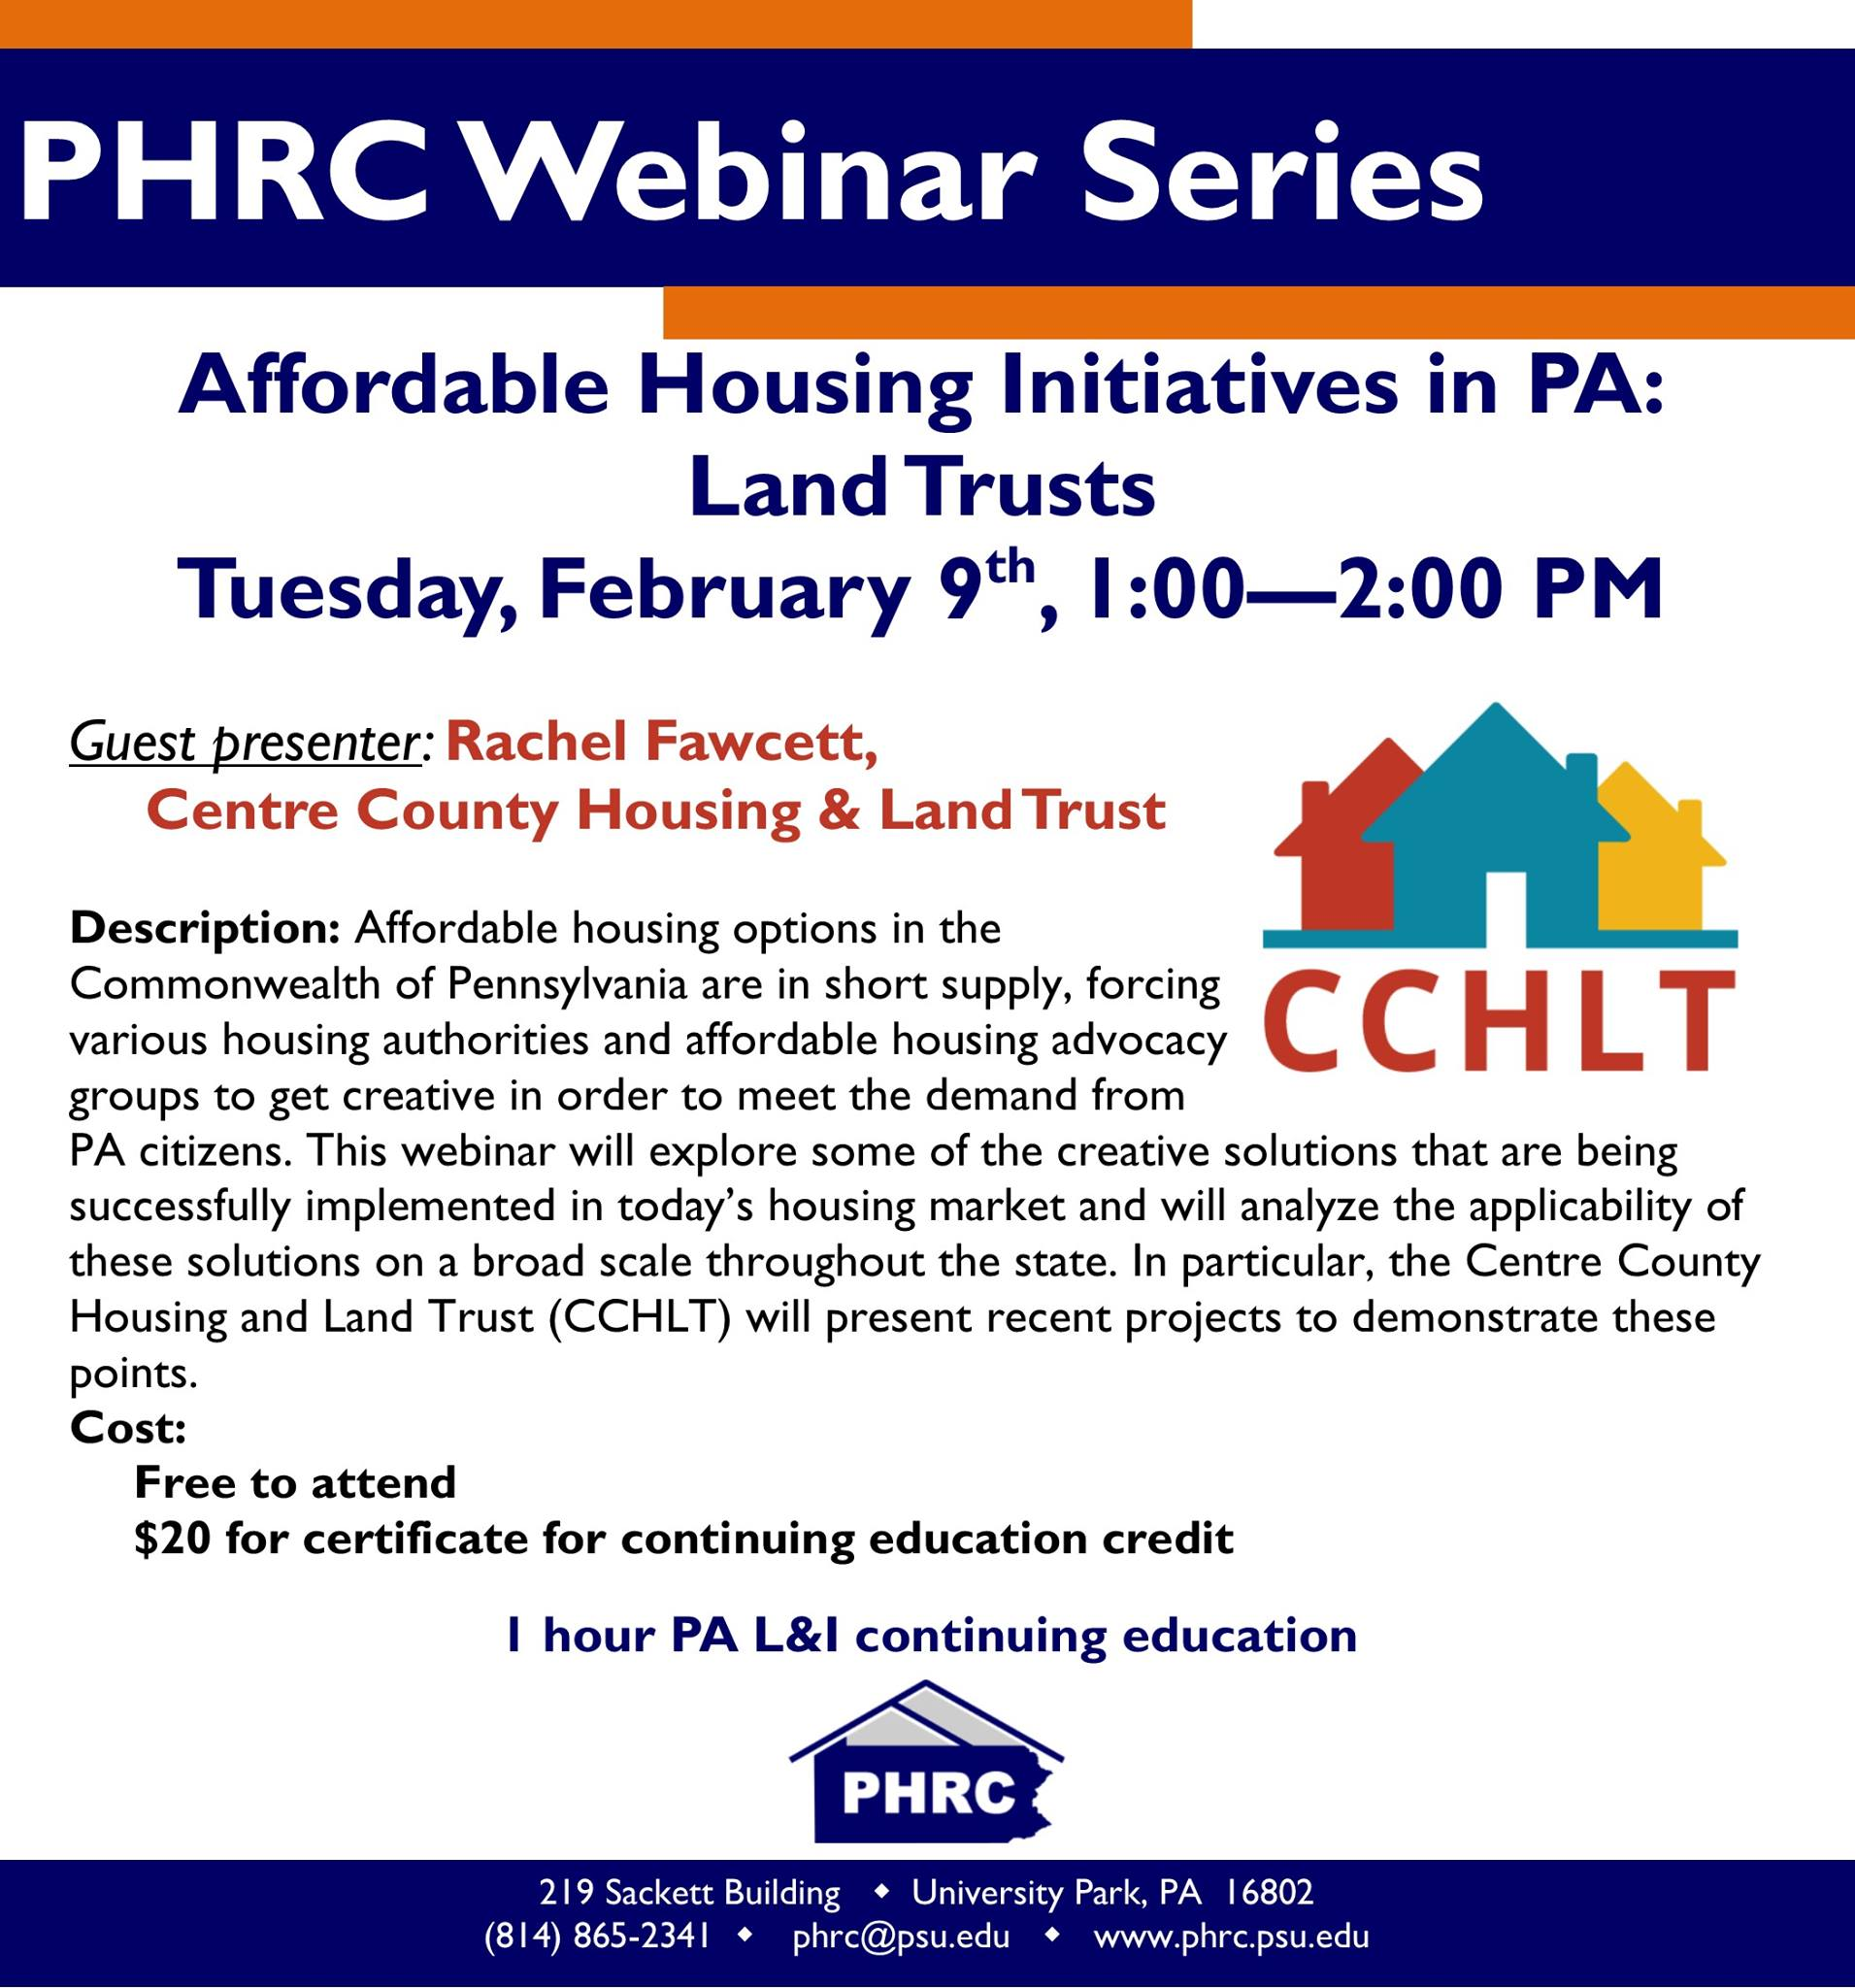 PHRC Webinar - Affordable Housing Initiatives in PA: Land Trusts